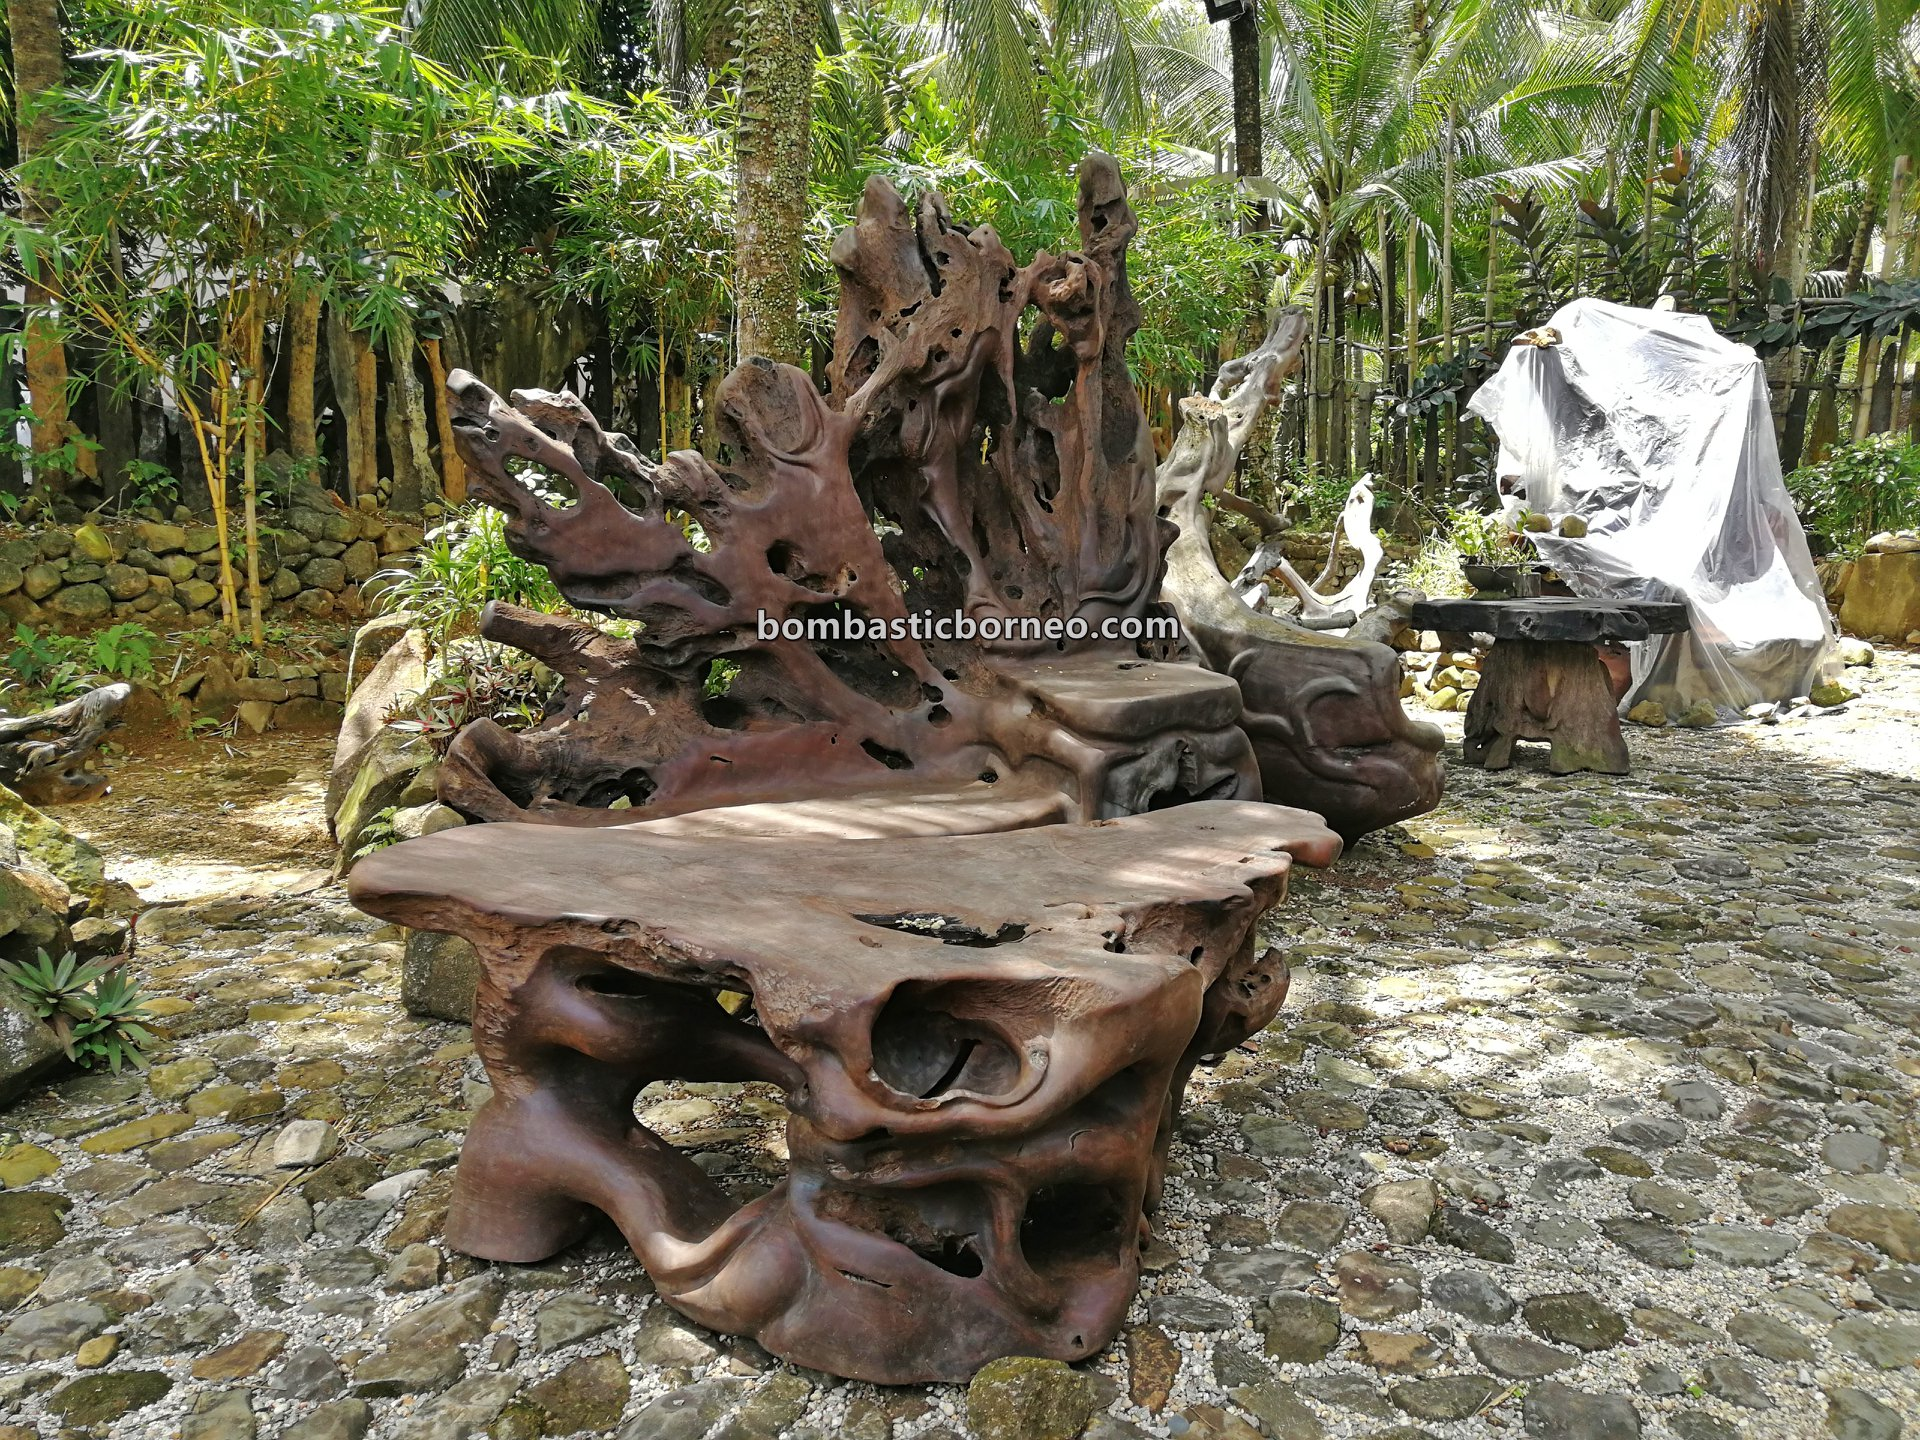 destination, kayu ulin, iron wood, gallery, Furniture, exhibition, Indonesia, nature, tourist attraction, travel guide, wood crafts, 婆罗洲西加里曼丹, 山口洋南洋铁木, 木雕木制家具工艺品,